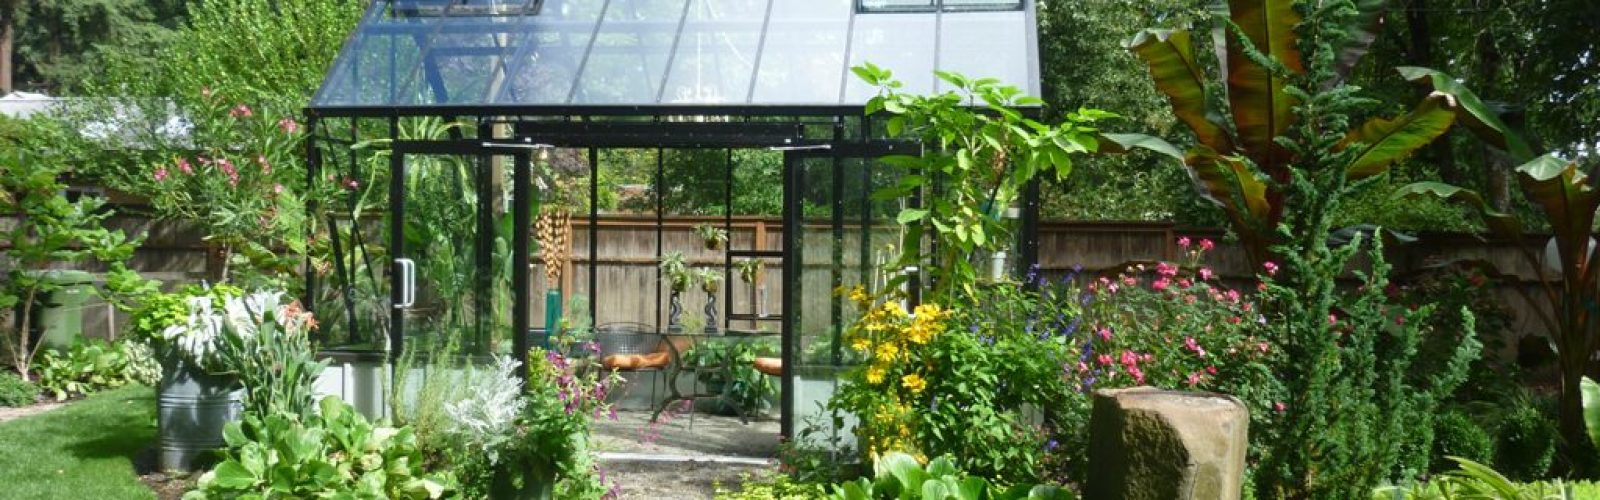 Cross-Country-Greenhouse-10-1024x768